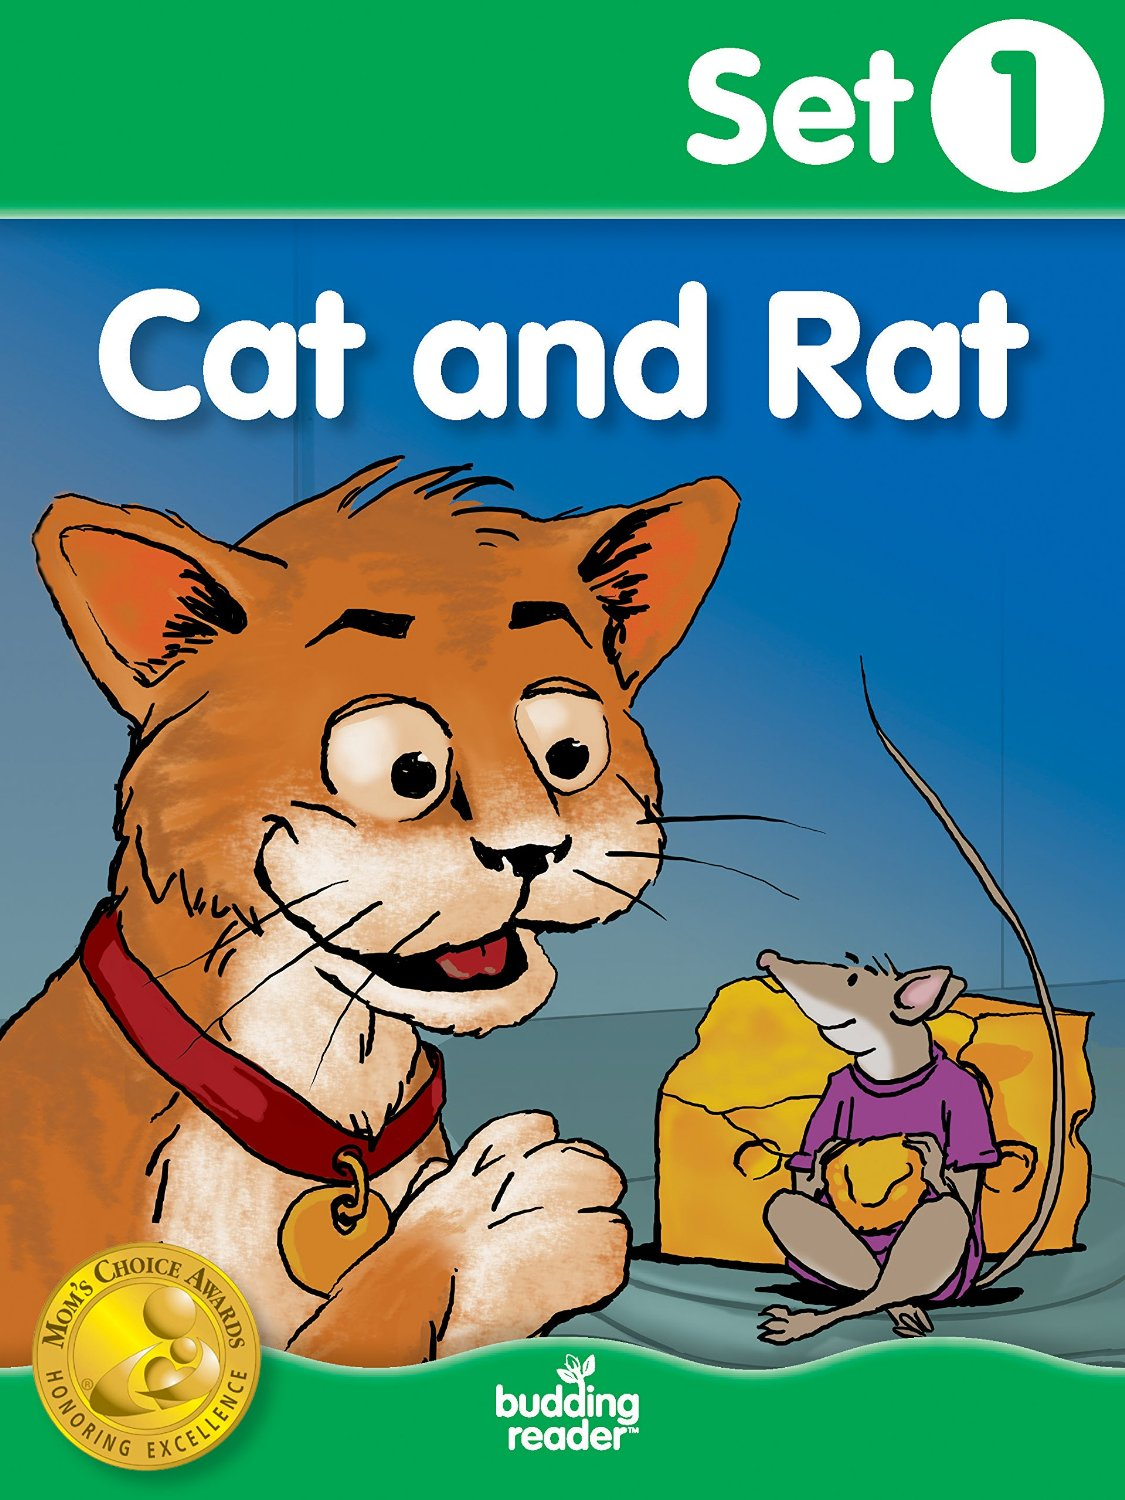 Cat And Rat By Melinda Thompson With Melissa Ferrell